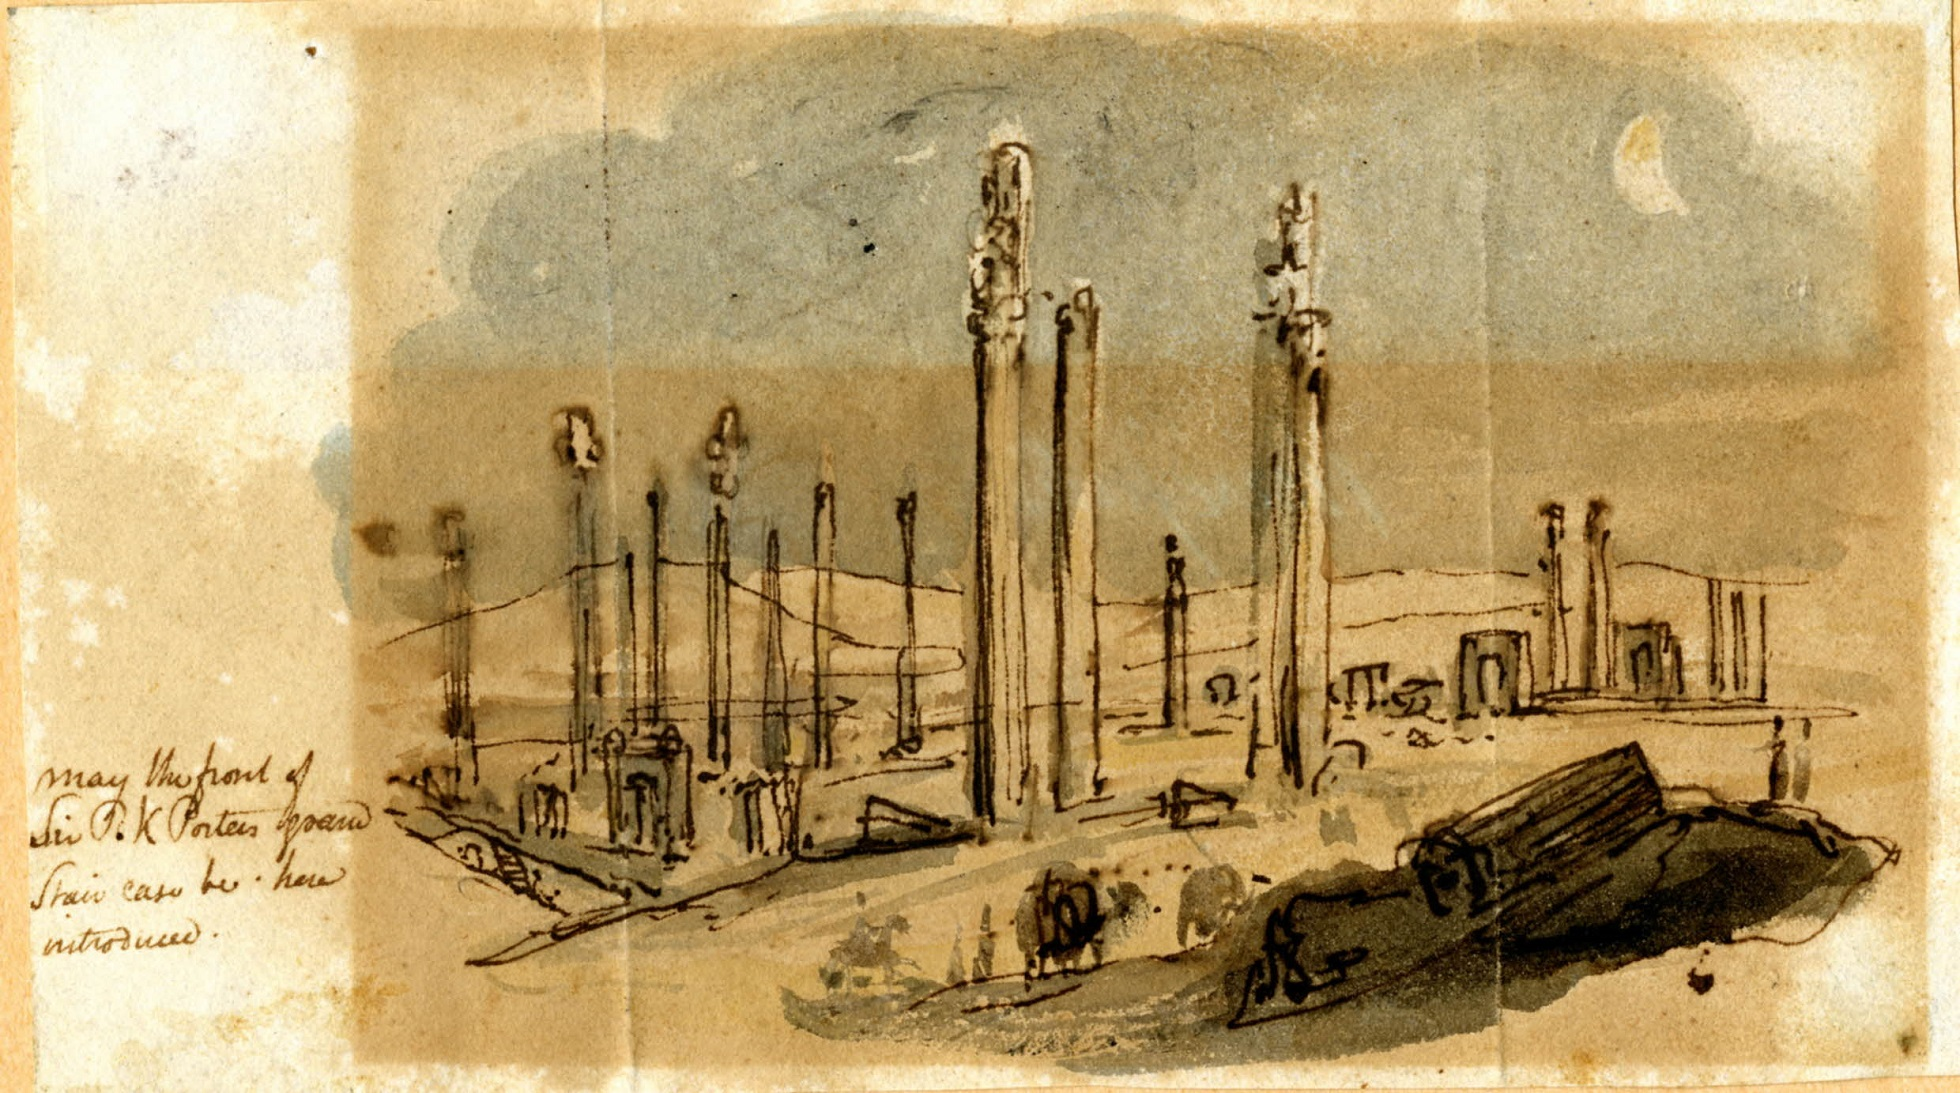 Watercolour of the ruins of Persepolis with standing columns, a fallen fragment on the right and a crescent moon above